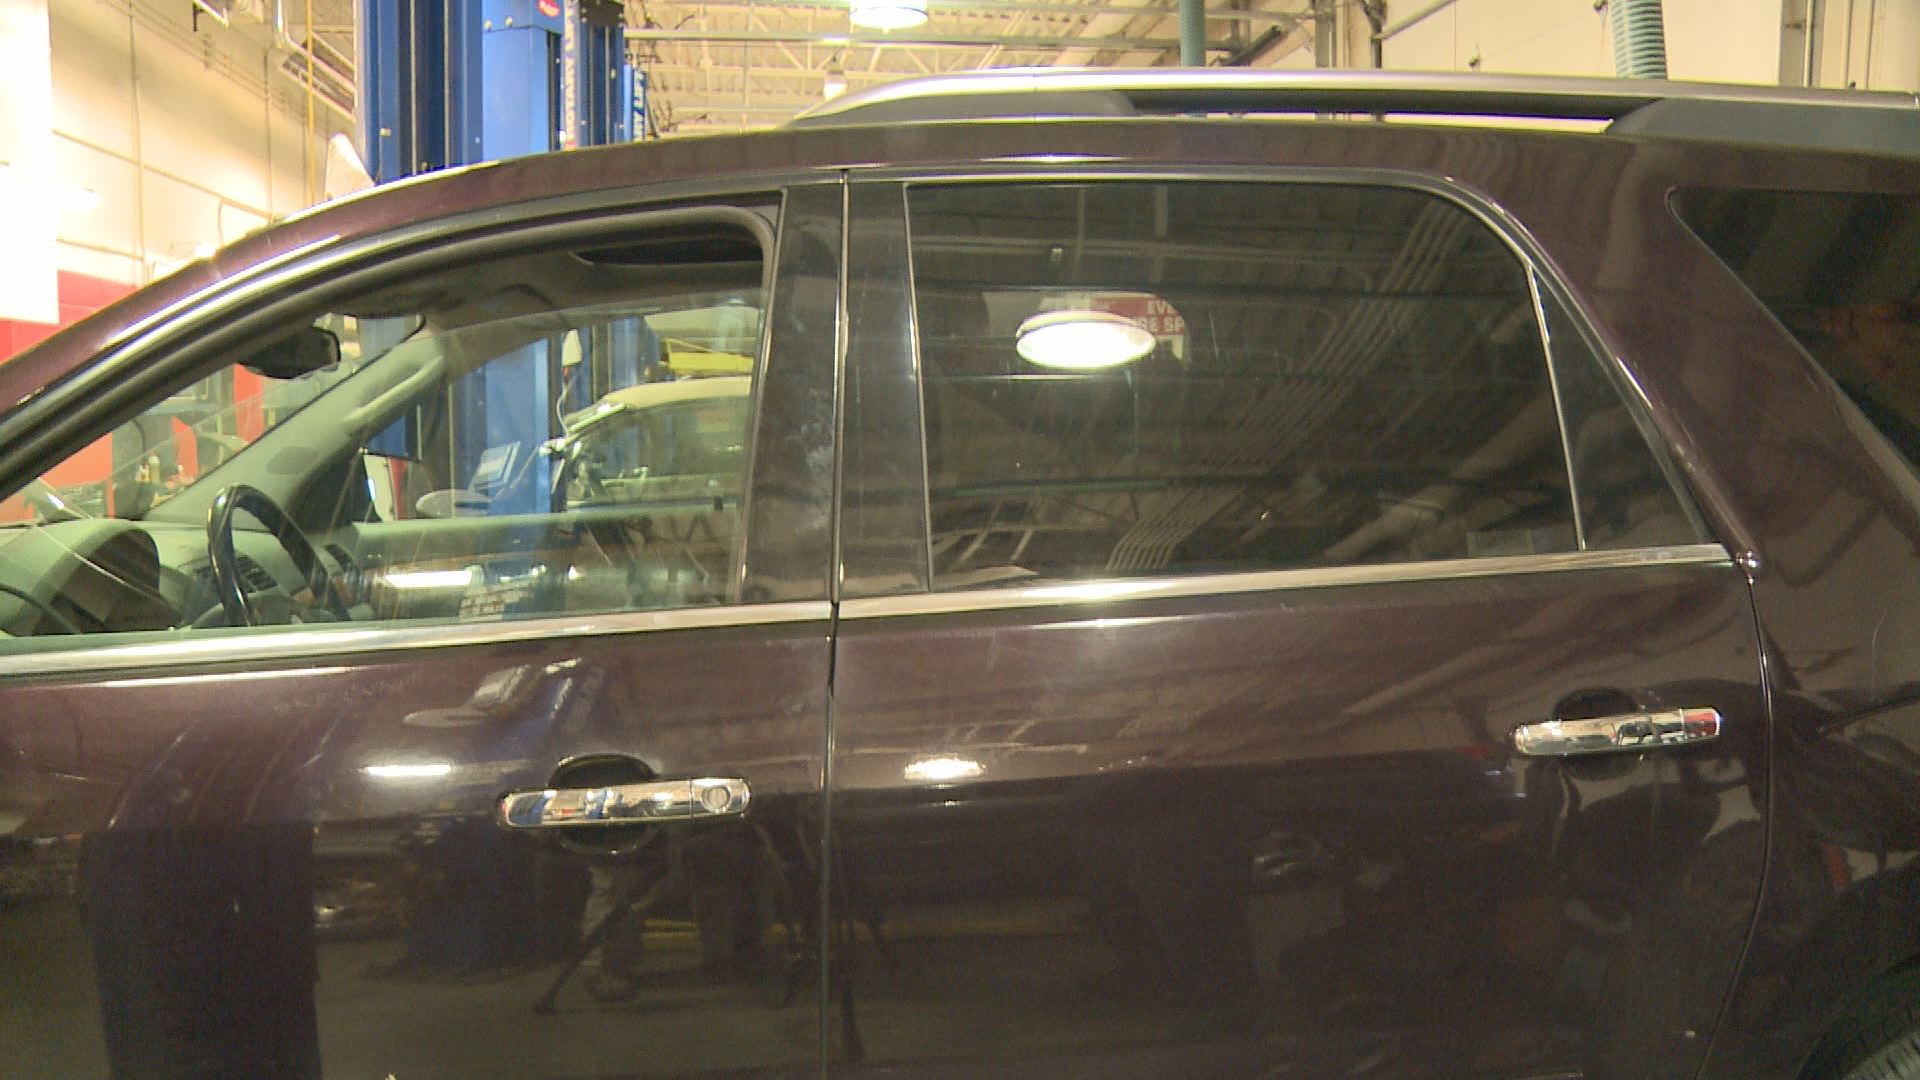 New York Law Tinted Car Windows And Inspections